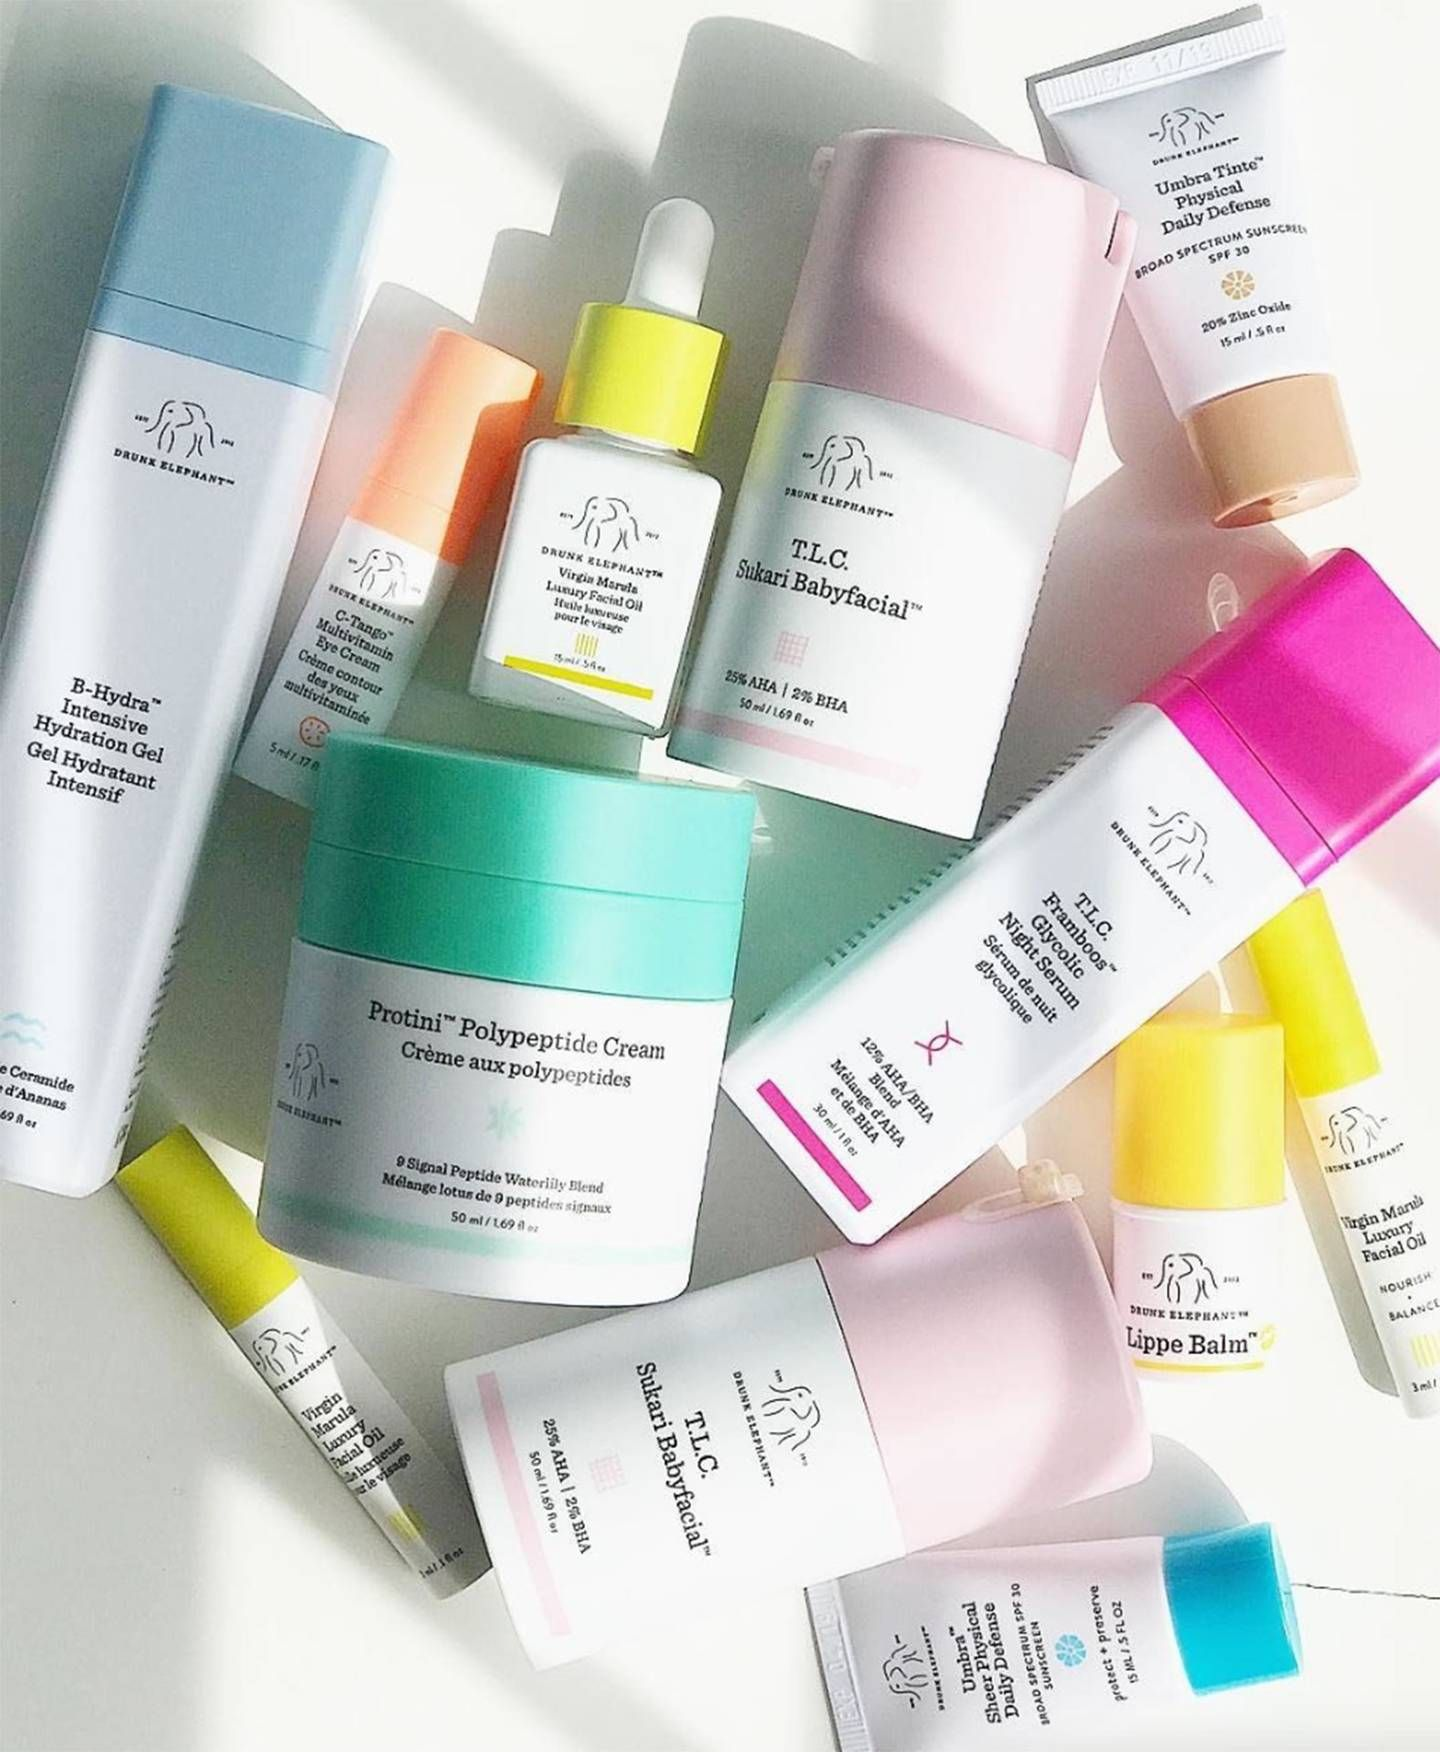 5 Things To Know About Cult Skincare Brand Drunk Elephant